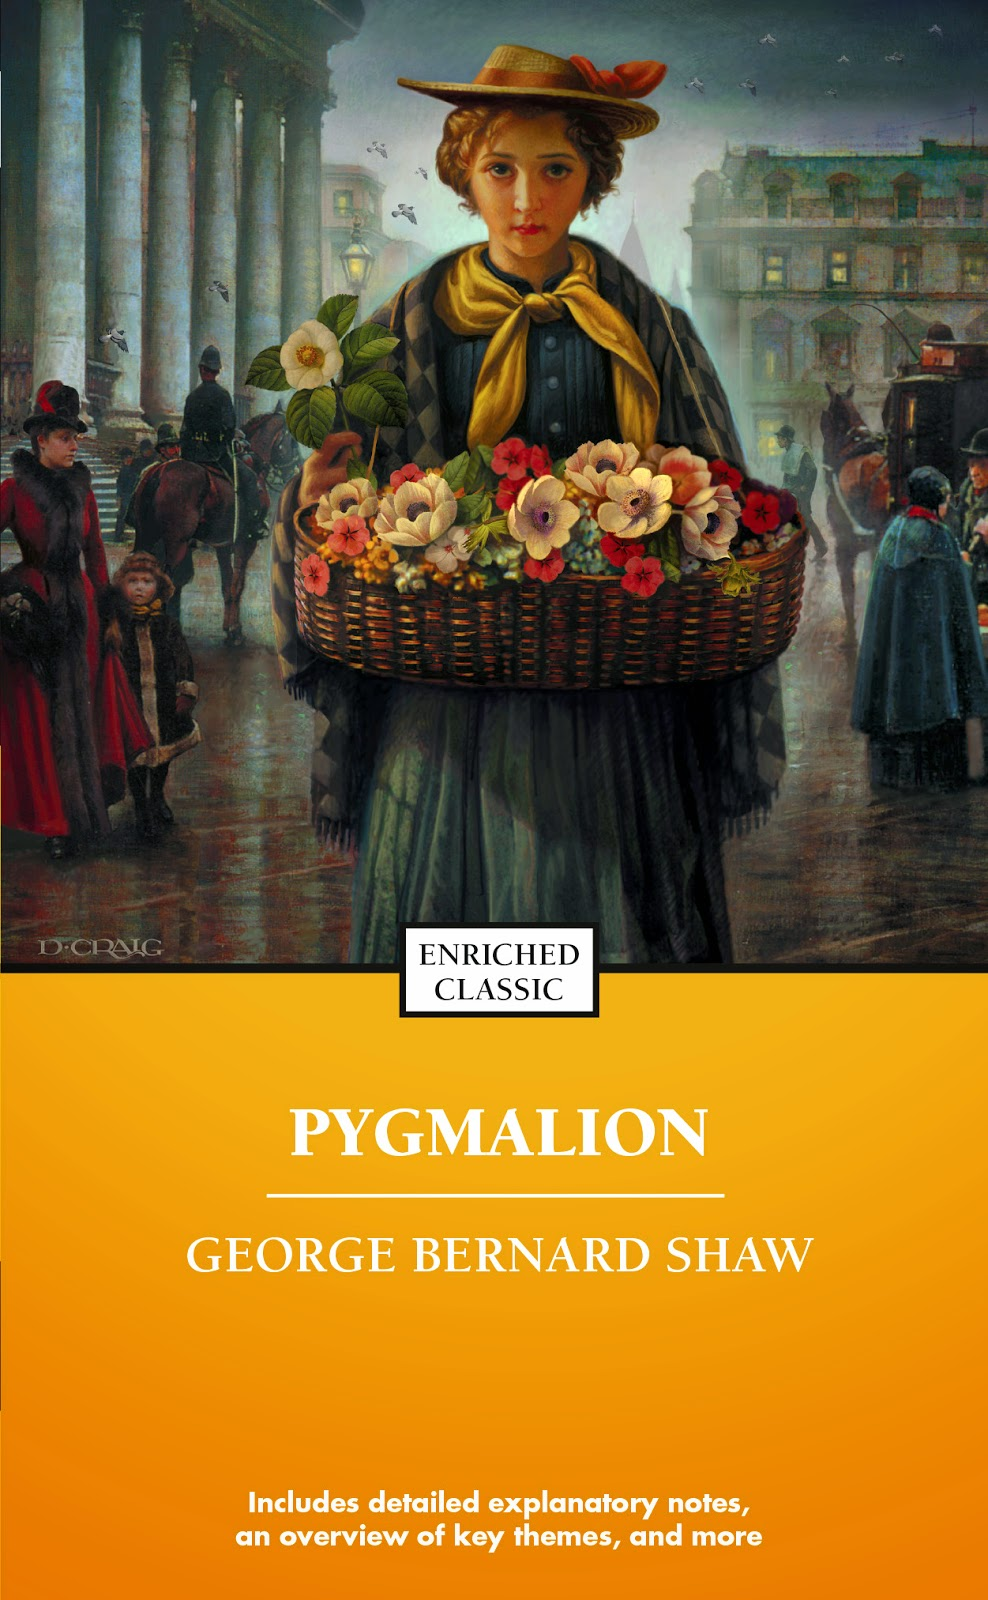 pyg on study guide let reviewer essay pyg on effect definition  feed aggregator casey cardinia libraries pyg on a play by george bernard shaw